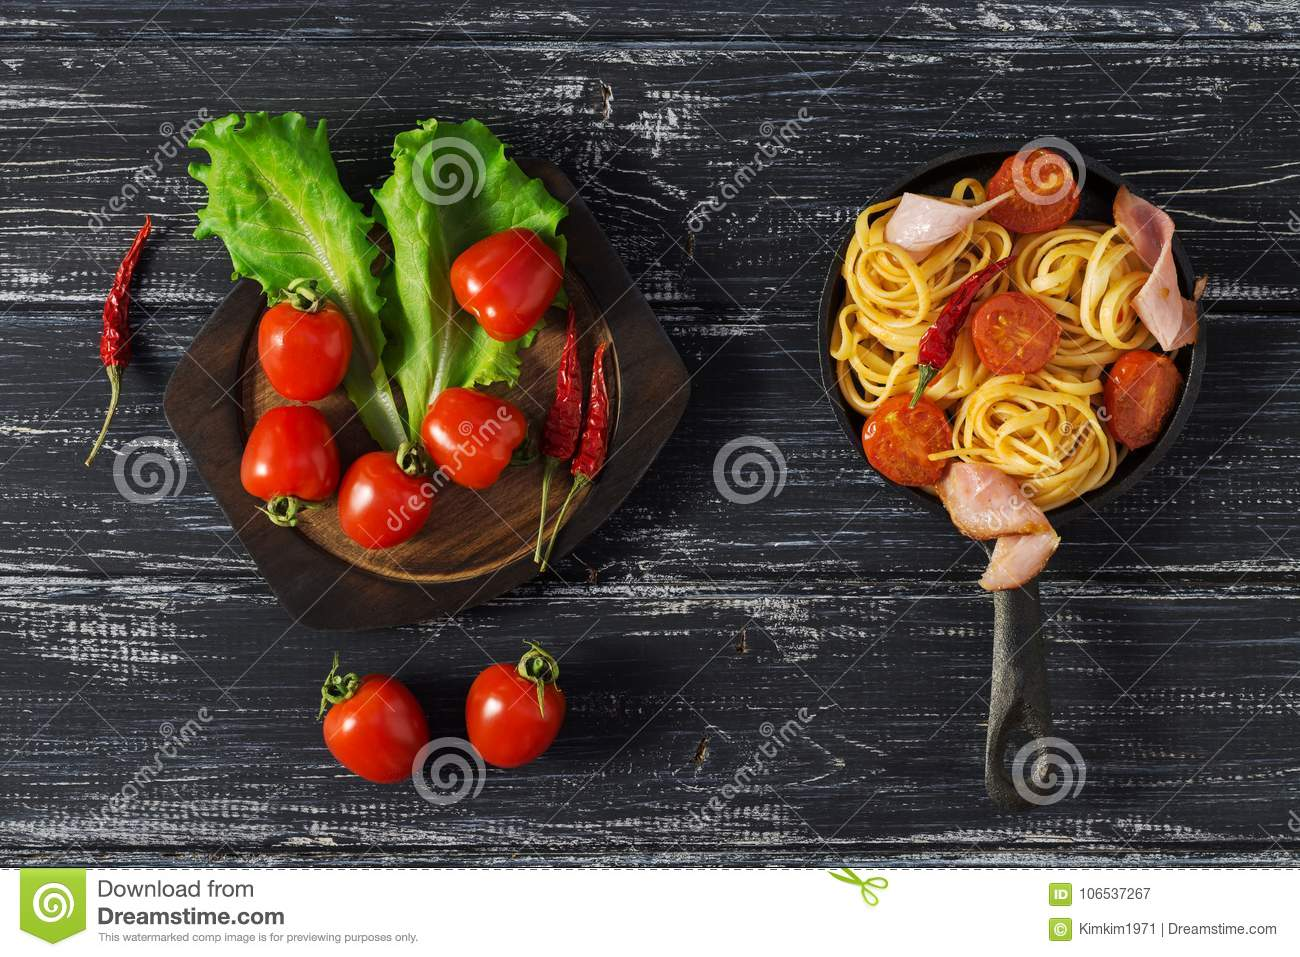 Smalle Kast Wit.Spaghetti With Tomato And Ham Served On A Small Cast Iron Frying Pan